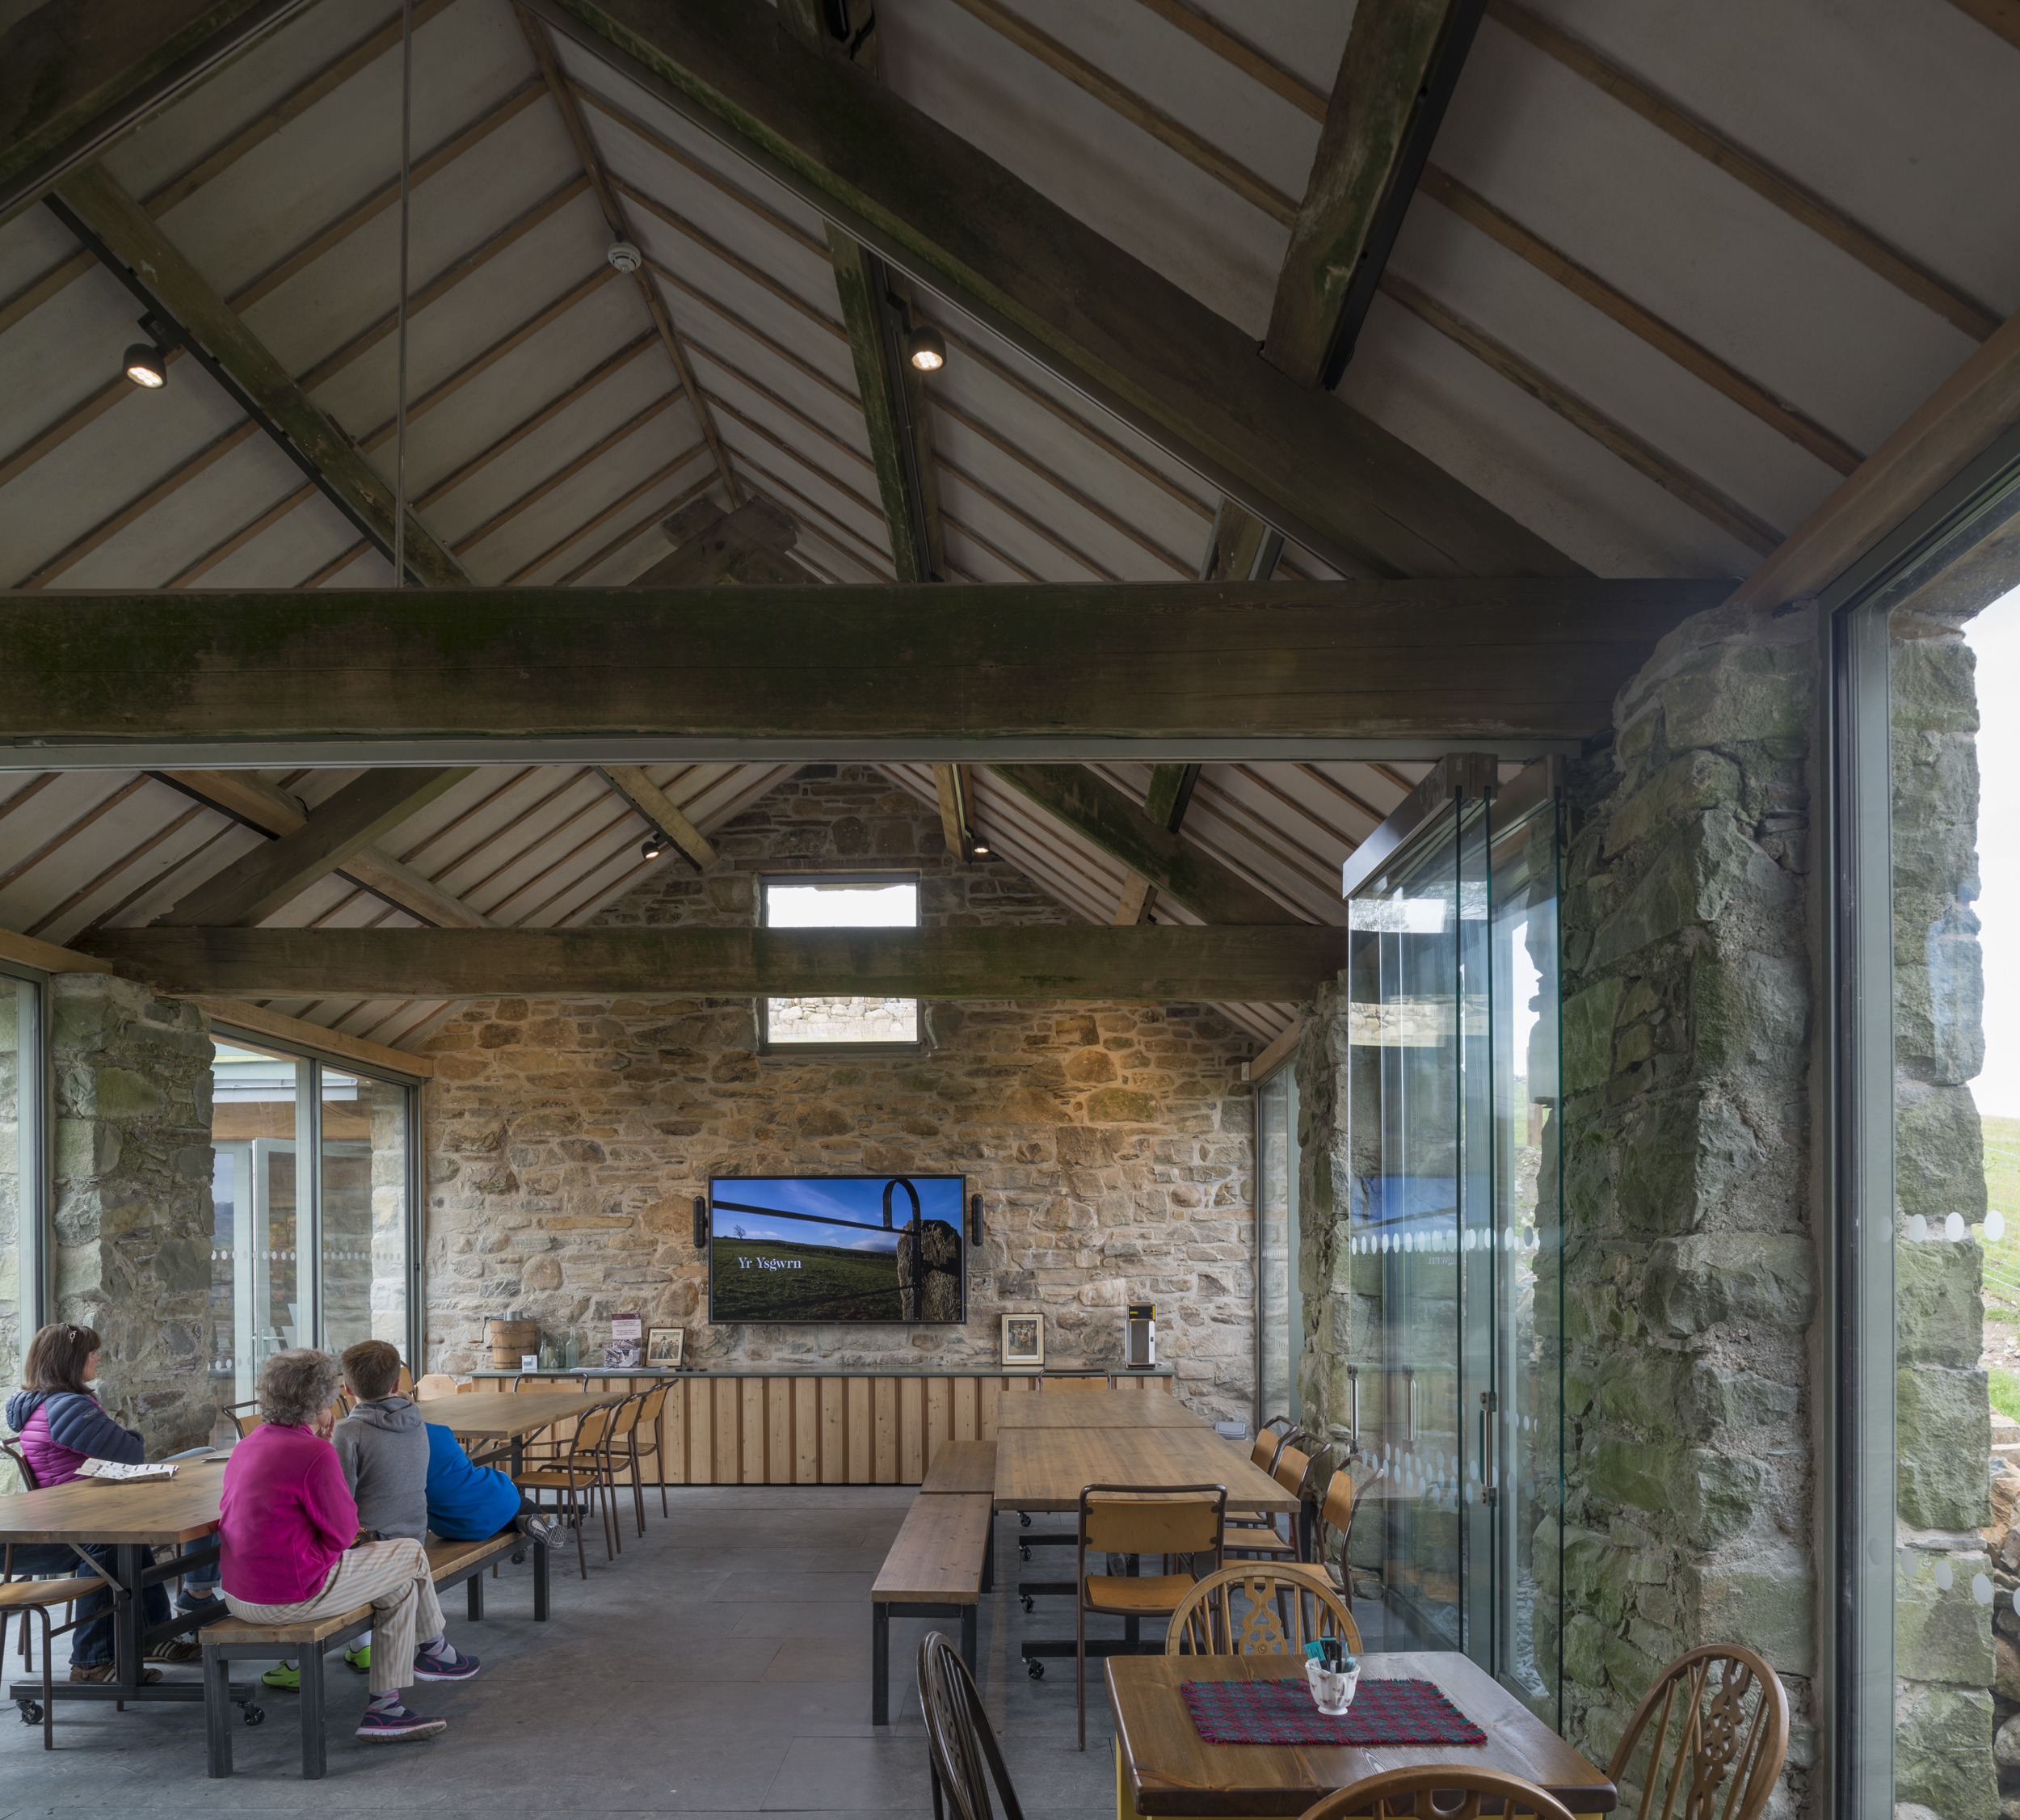 Beudy Llwyd Visitor Centre - Tea Room